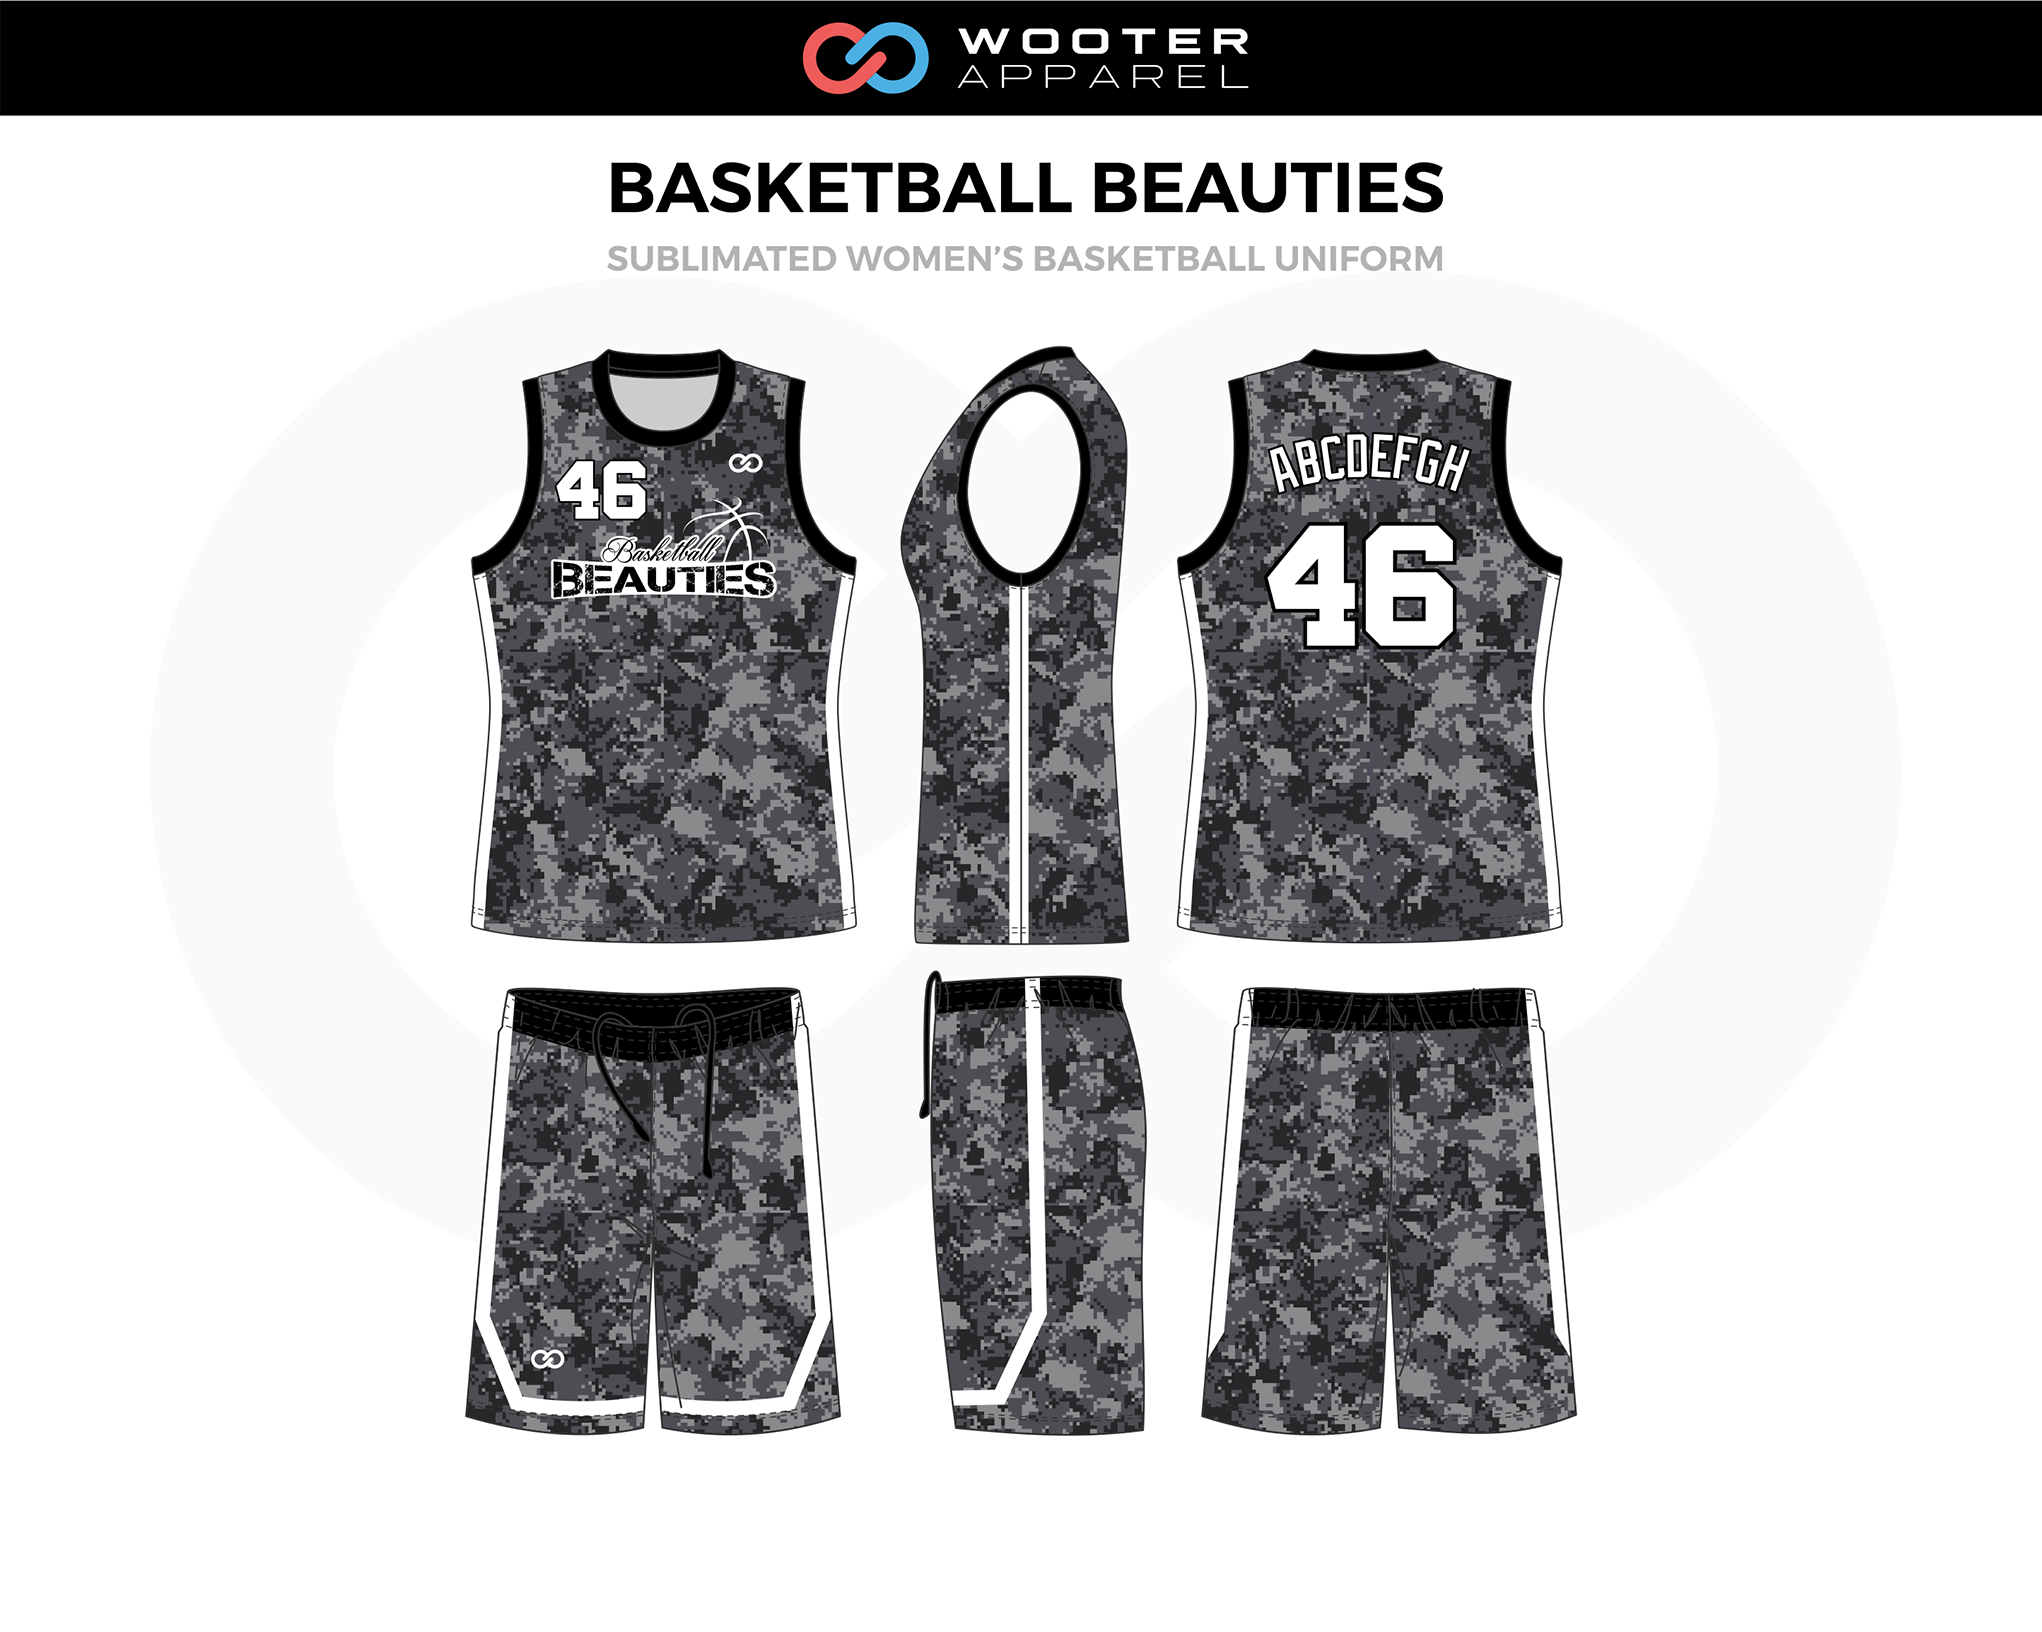 the latest 8177c c9347 Basketball Uniform Designs — Wooter Apparel | Team Uniforms ...